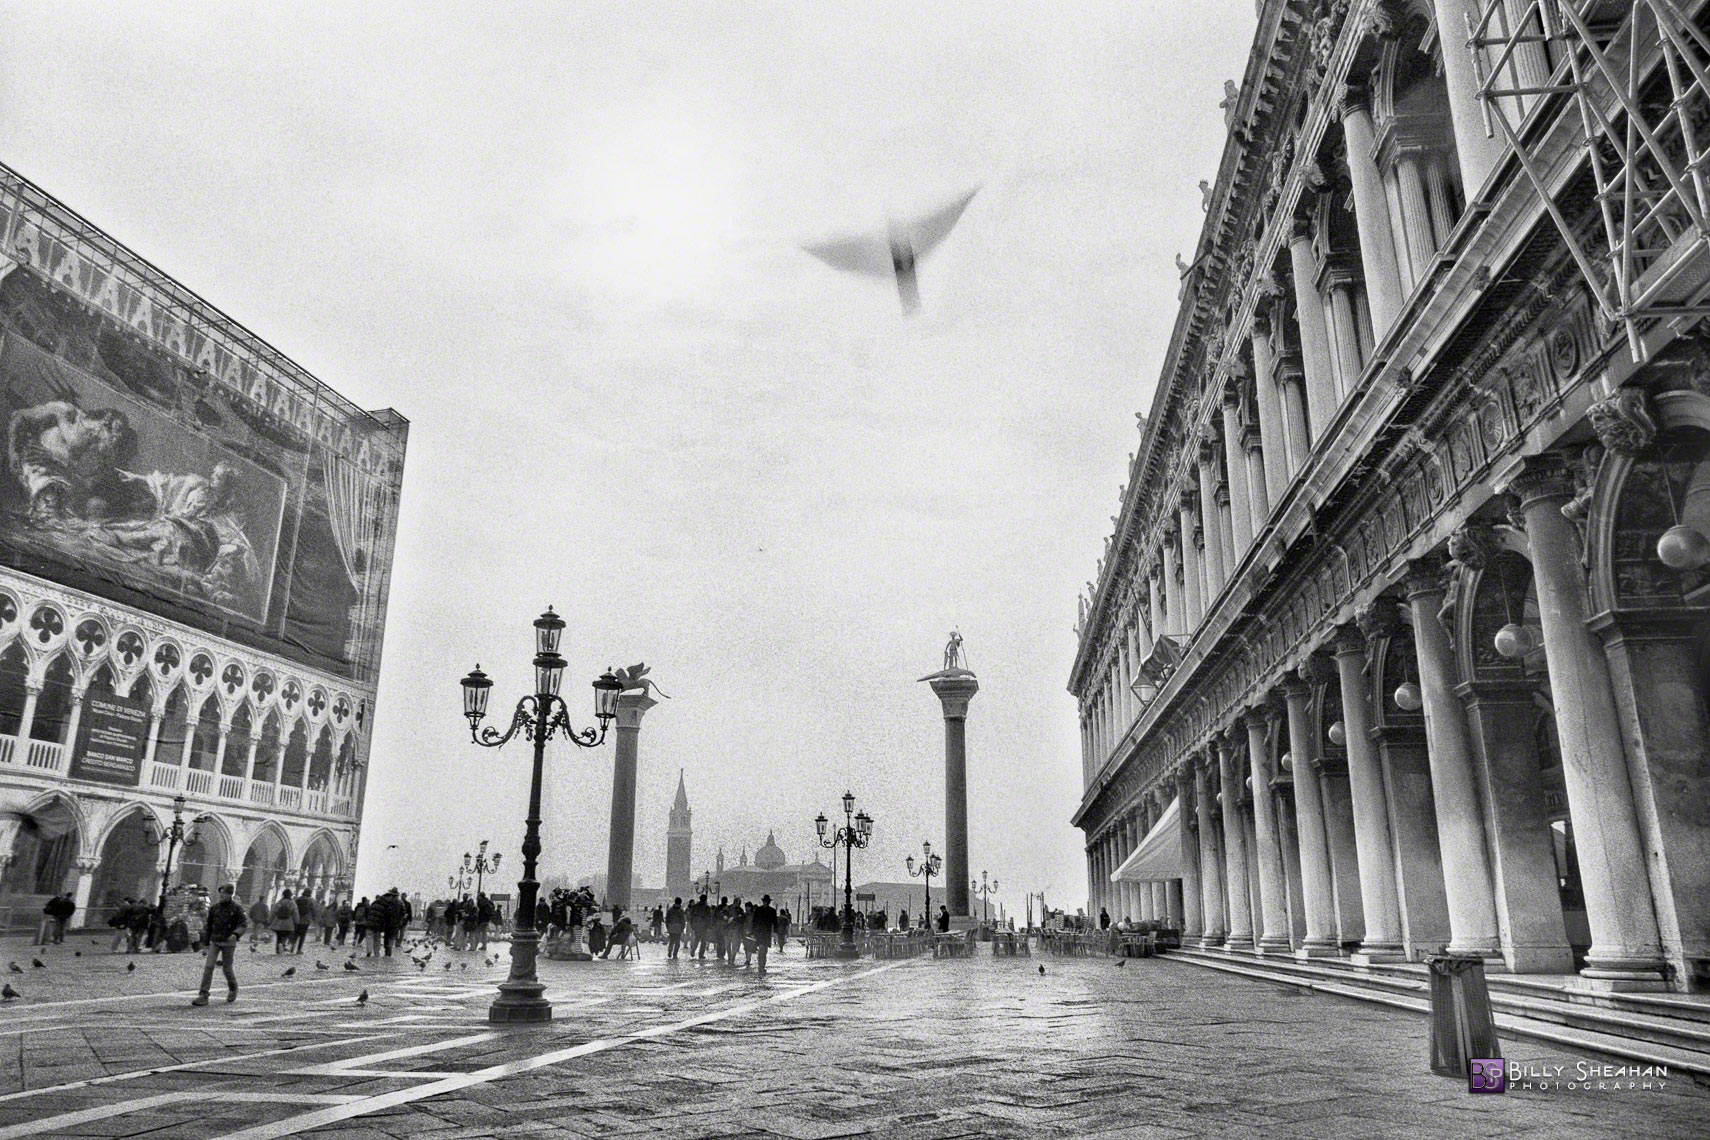 Bird_Over_Piazza_San_Marco__Venice__Italy_Italy-642_01_BW_D